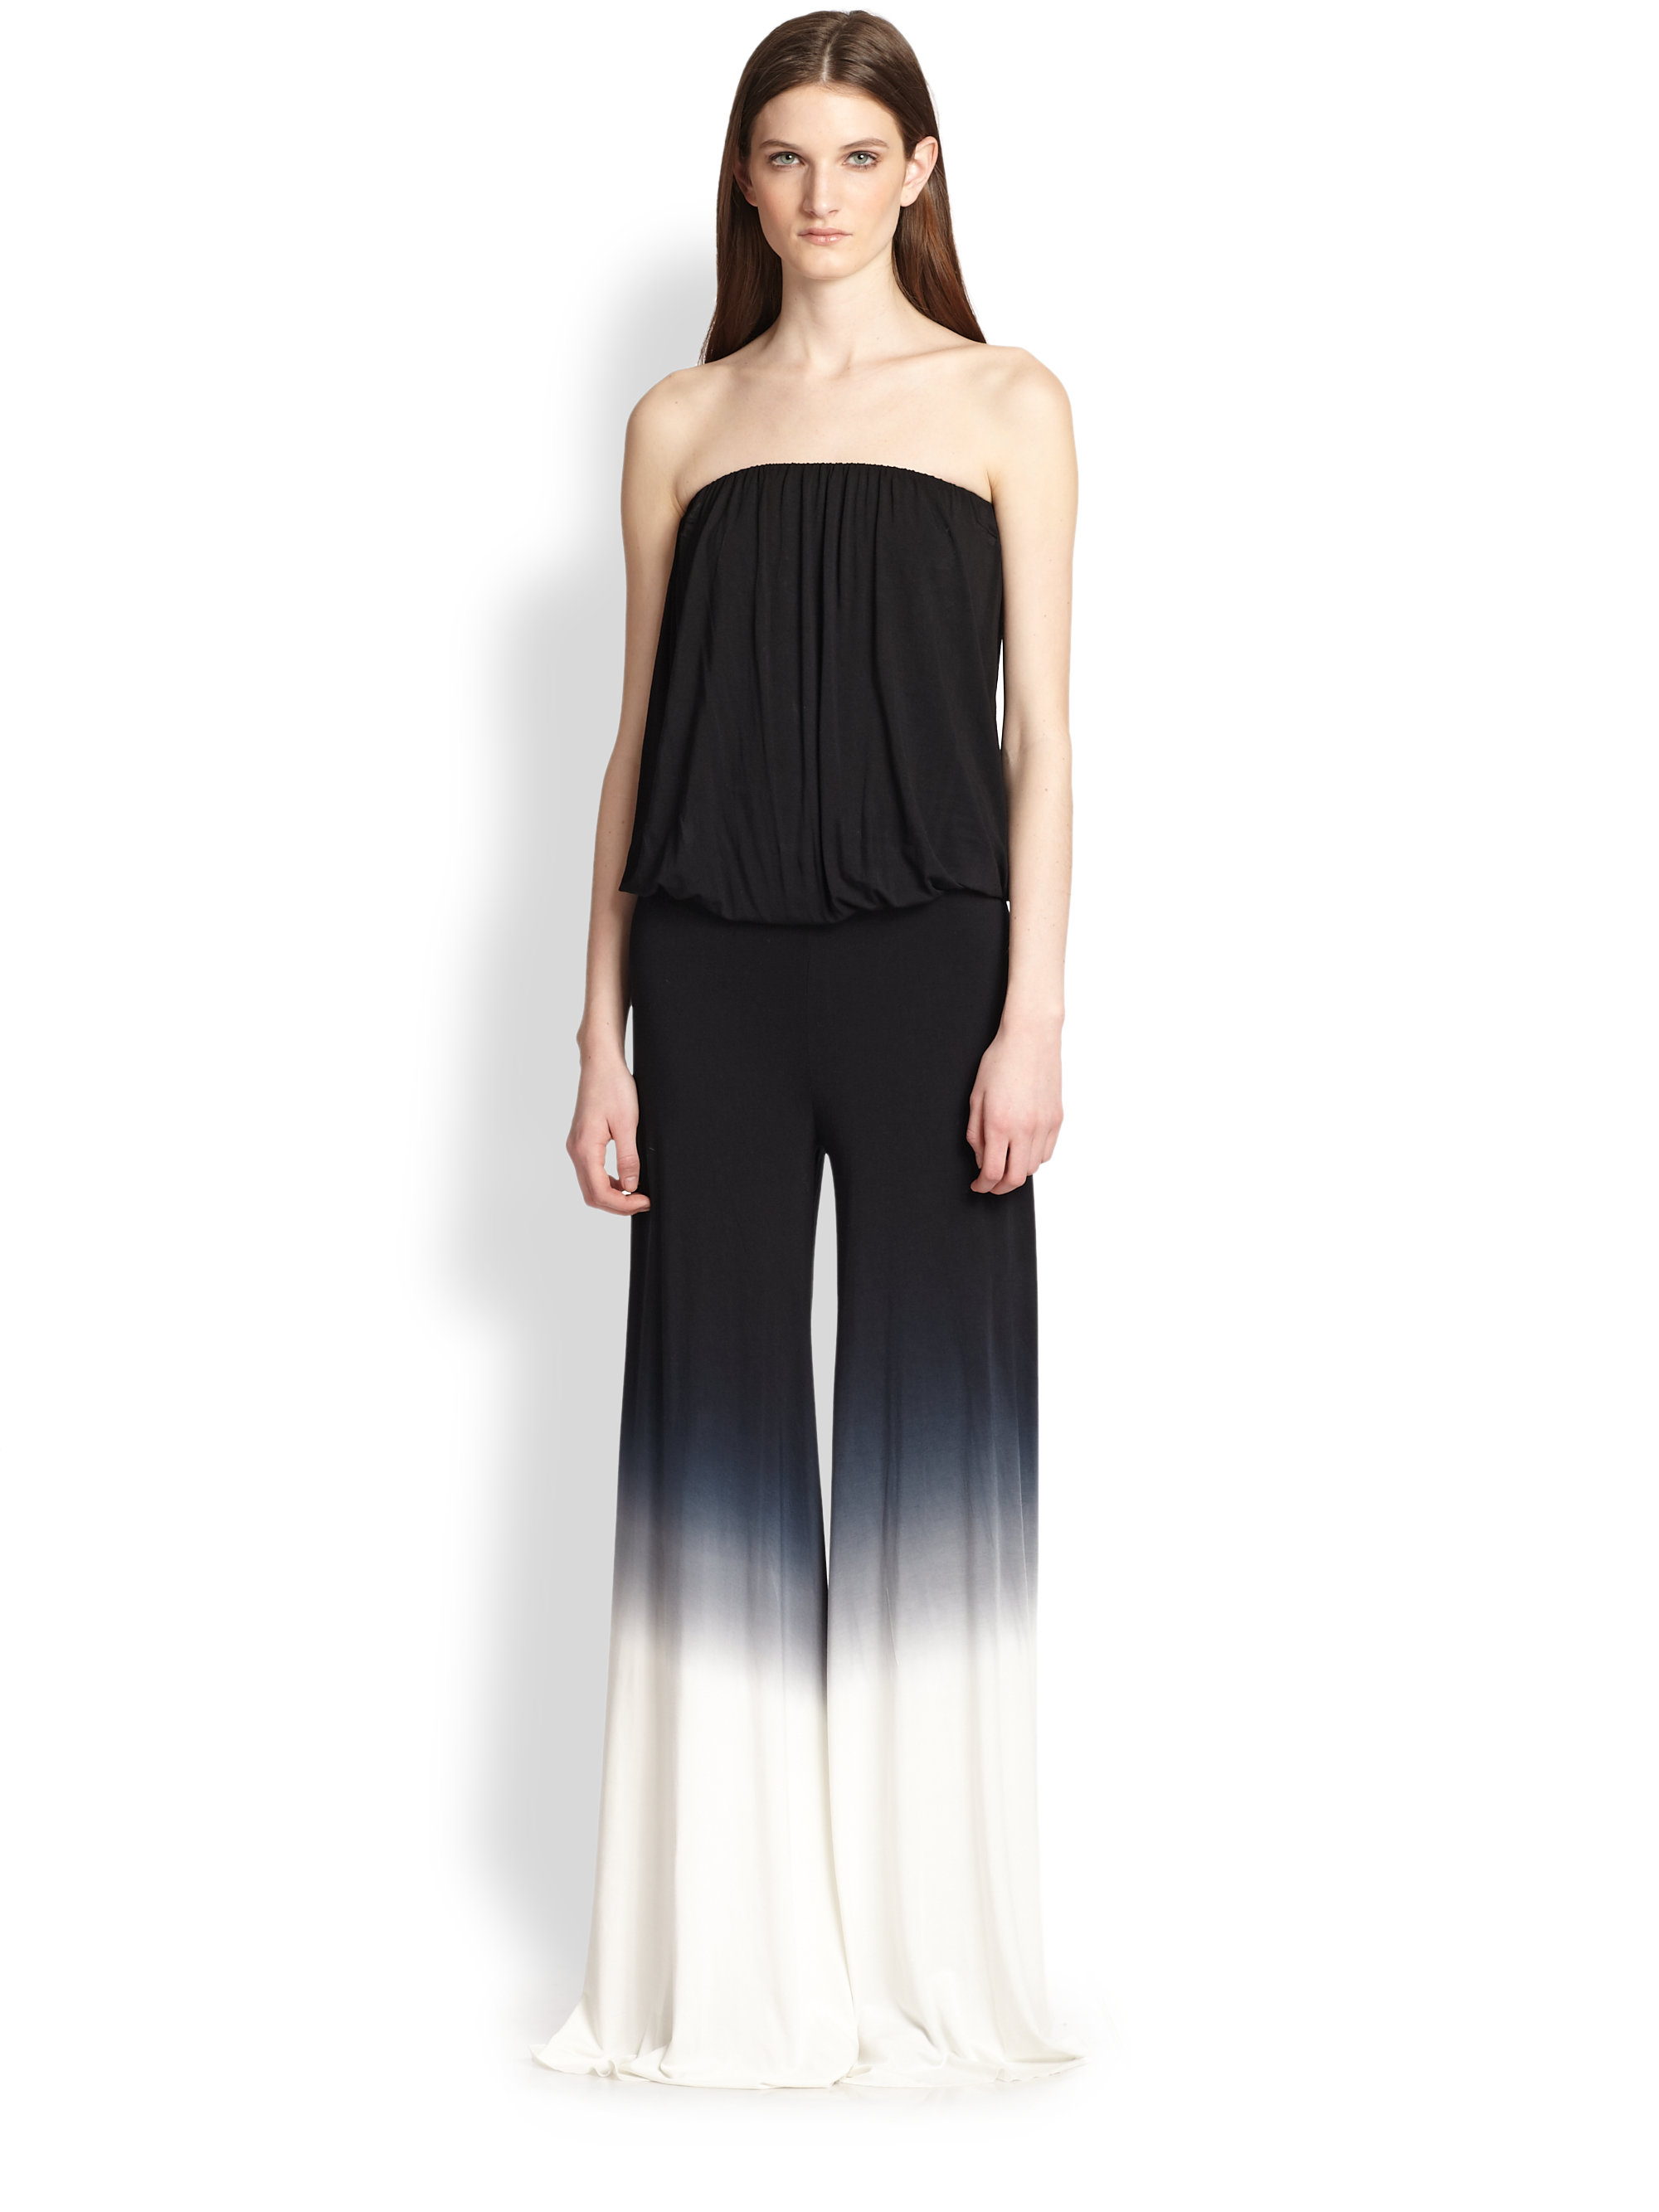 Lyst Young Fabulous Broke Sydney Strapless Ombre Wideleg